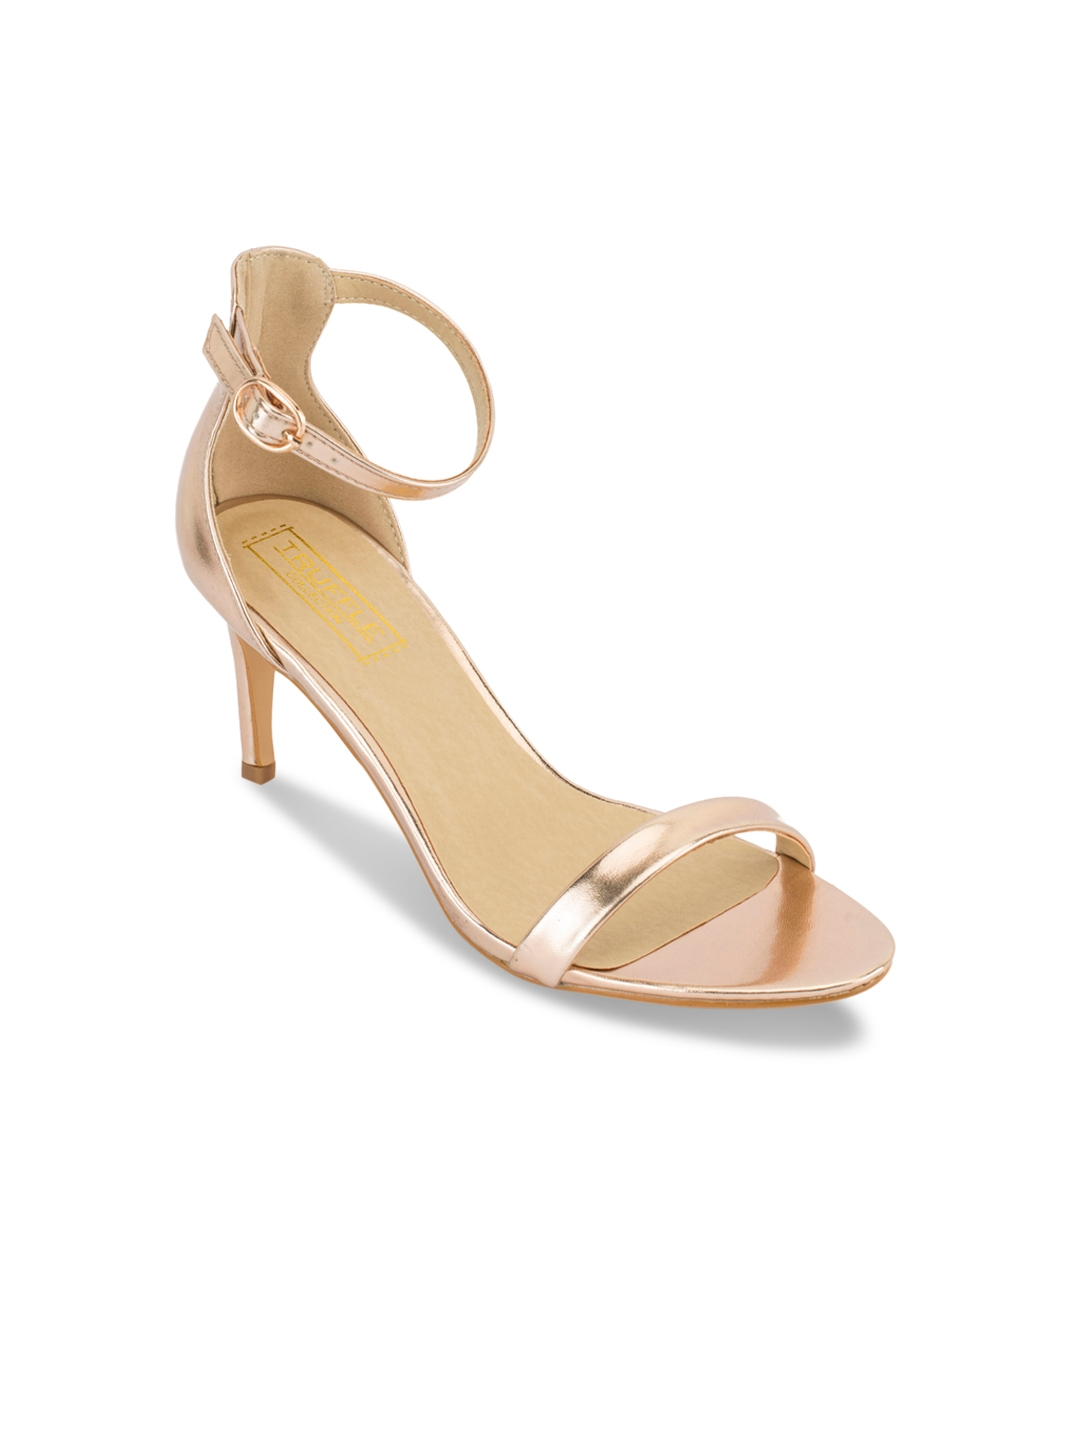 0f28aecd2 Buy Truffle Collection Women Gold Toned Solid Sandals - Heels for ...